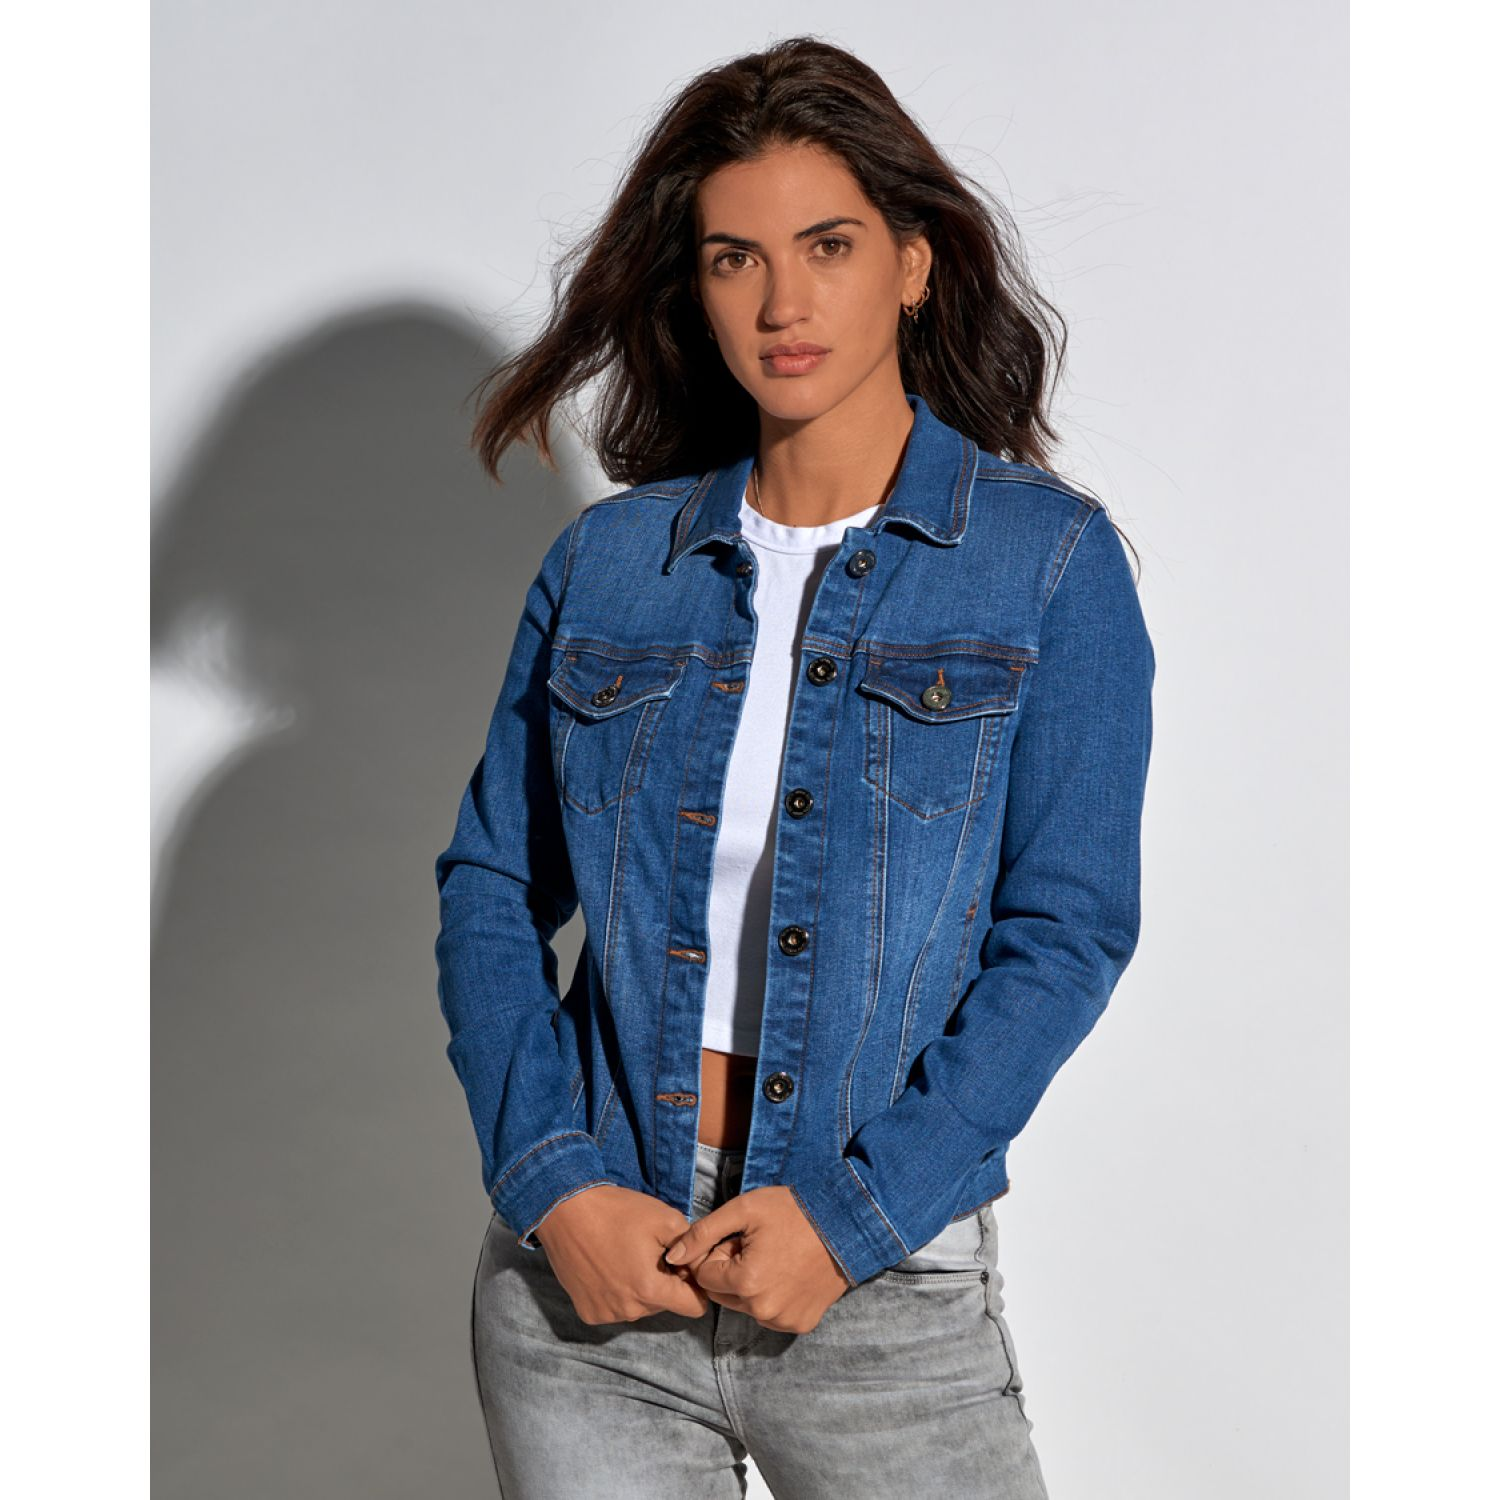 Octo Denim Co josefina Celeste Denim Sacos